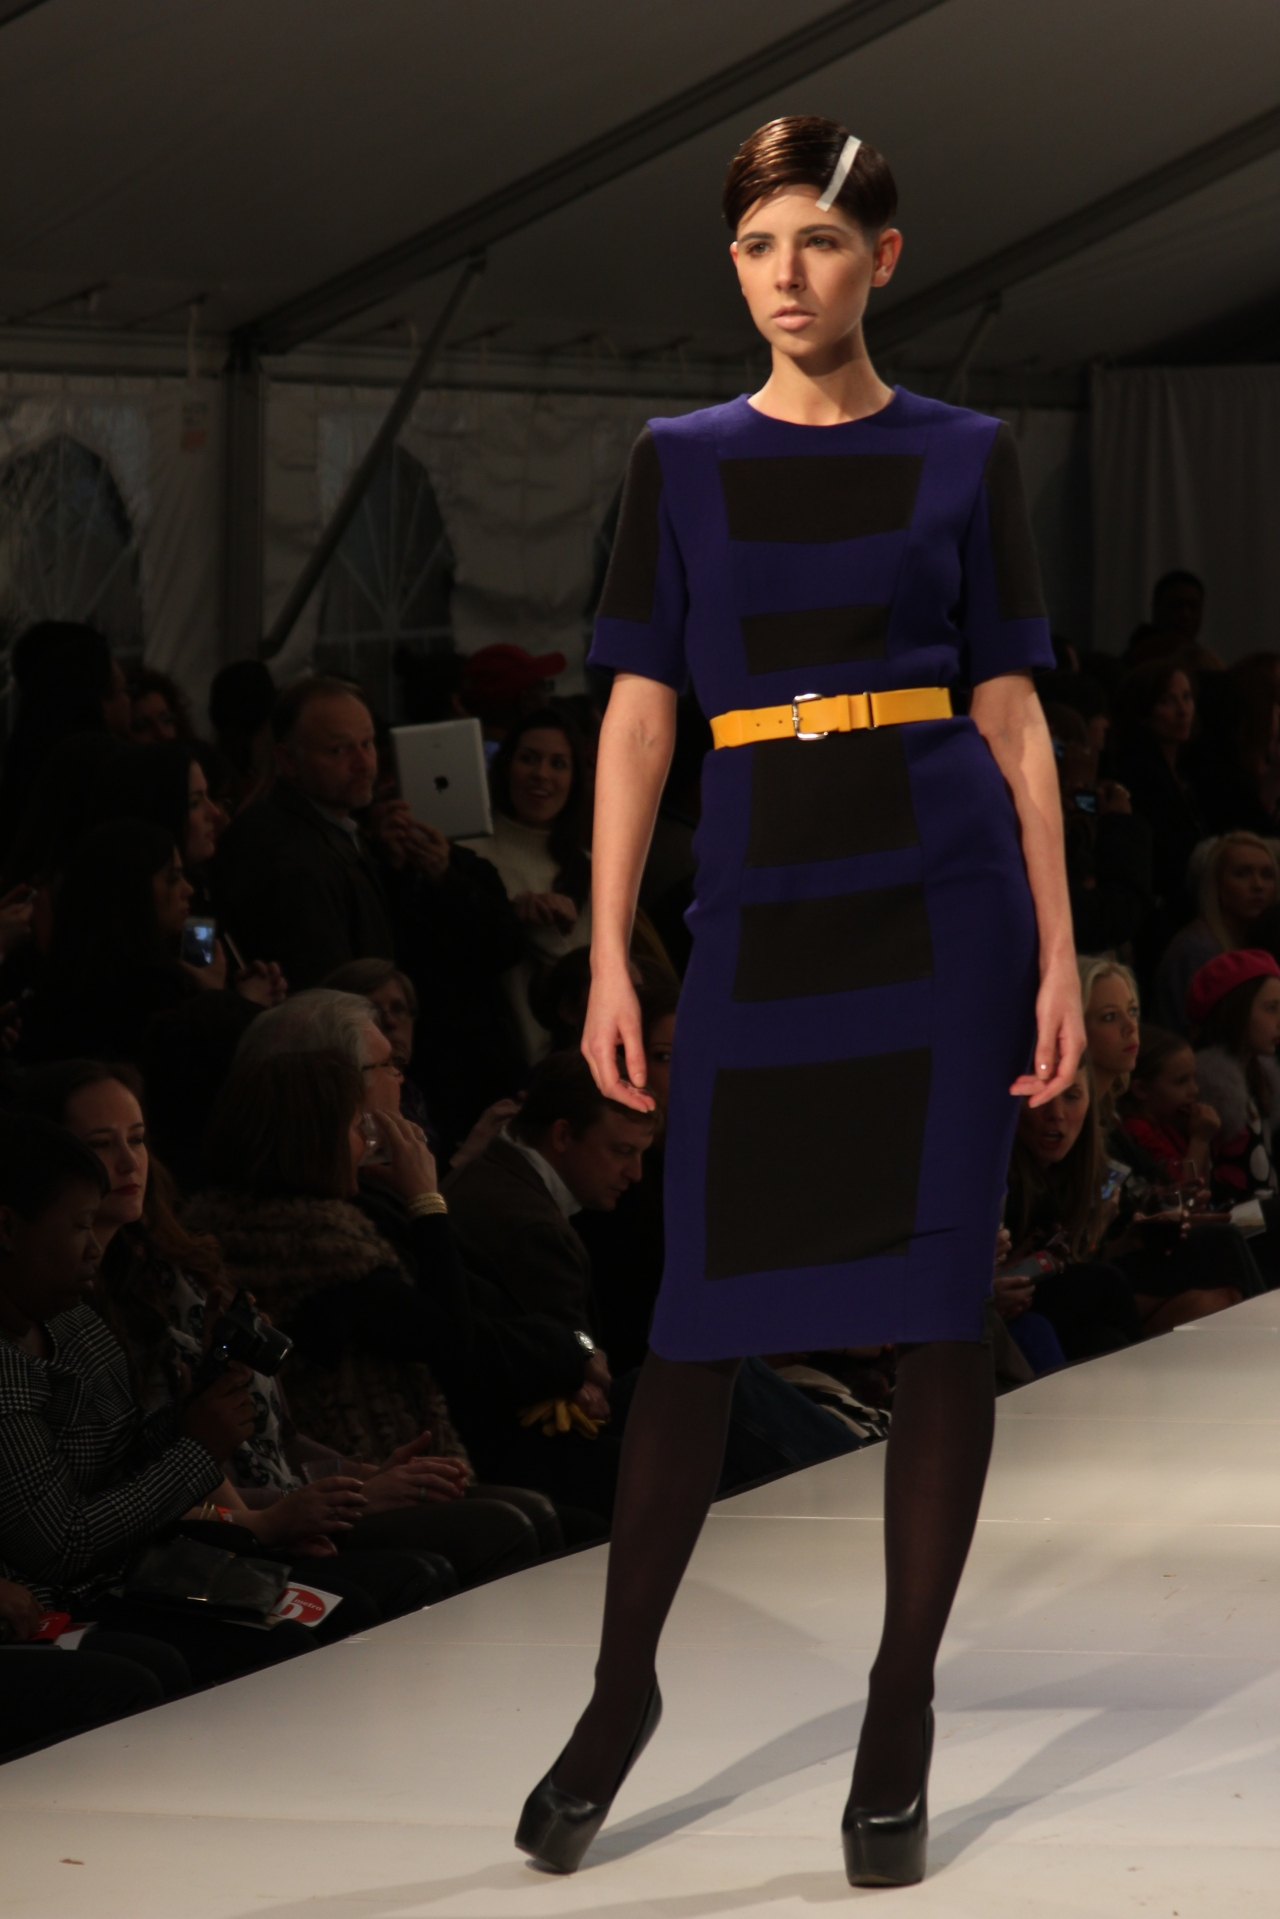 Anthony Ryan's Collection   Birmingham Fashion Week 2013Photo Credit: Vintage Inspired Passionista